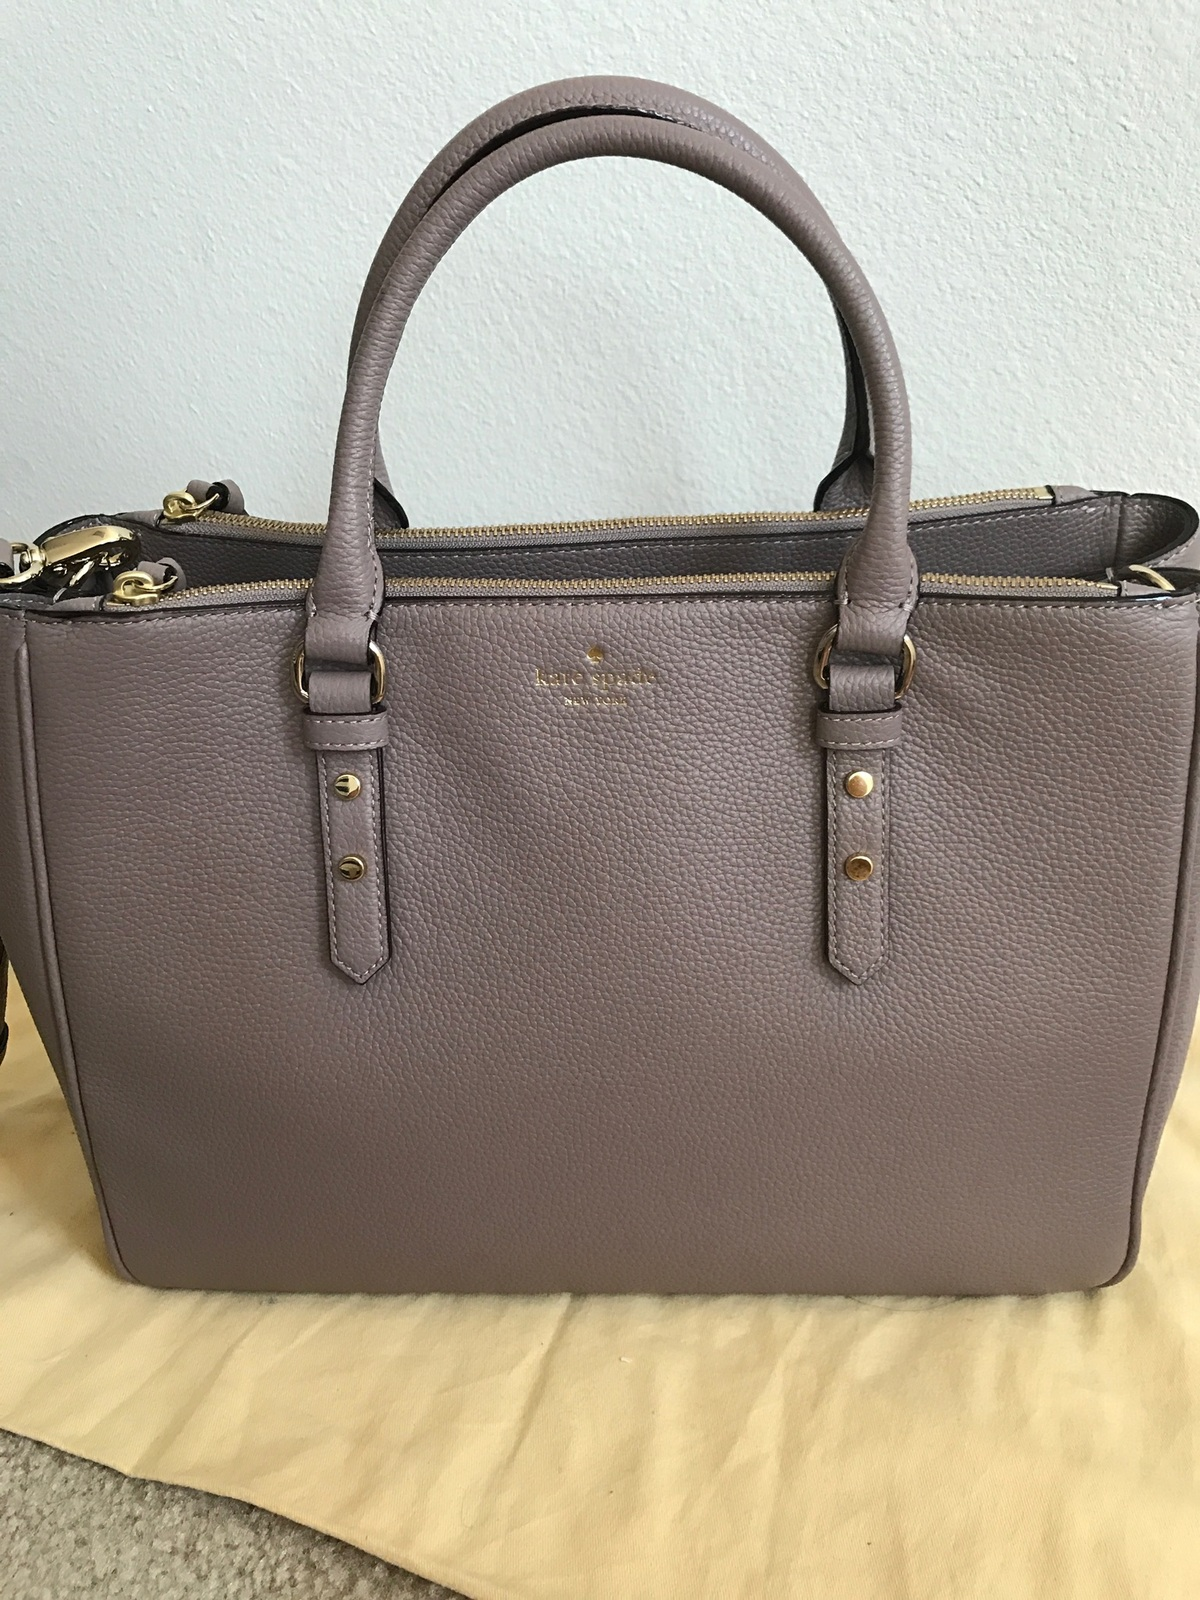 430 Nwt Kate Spade Porcini Mulberry Street and 50 similar items. Img 1372 c611a77cd4140